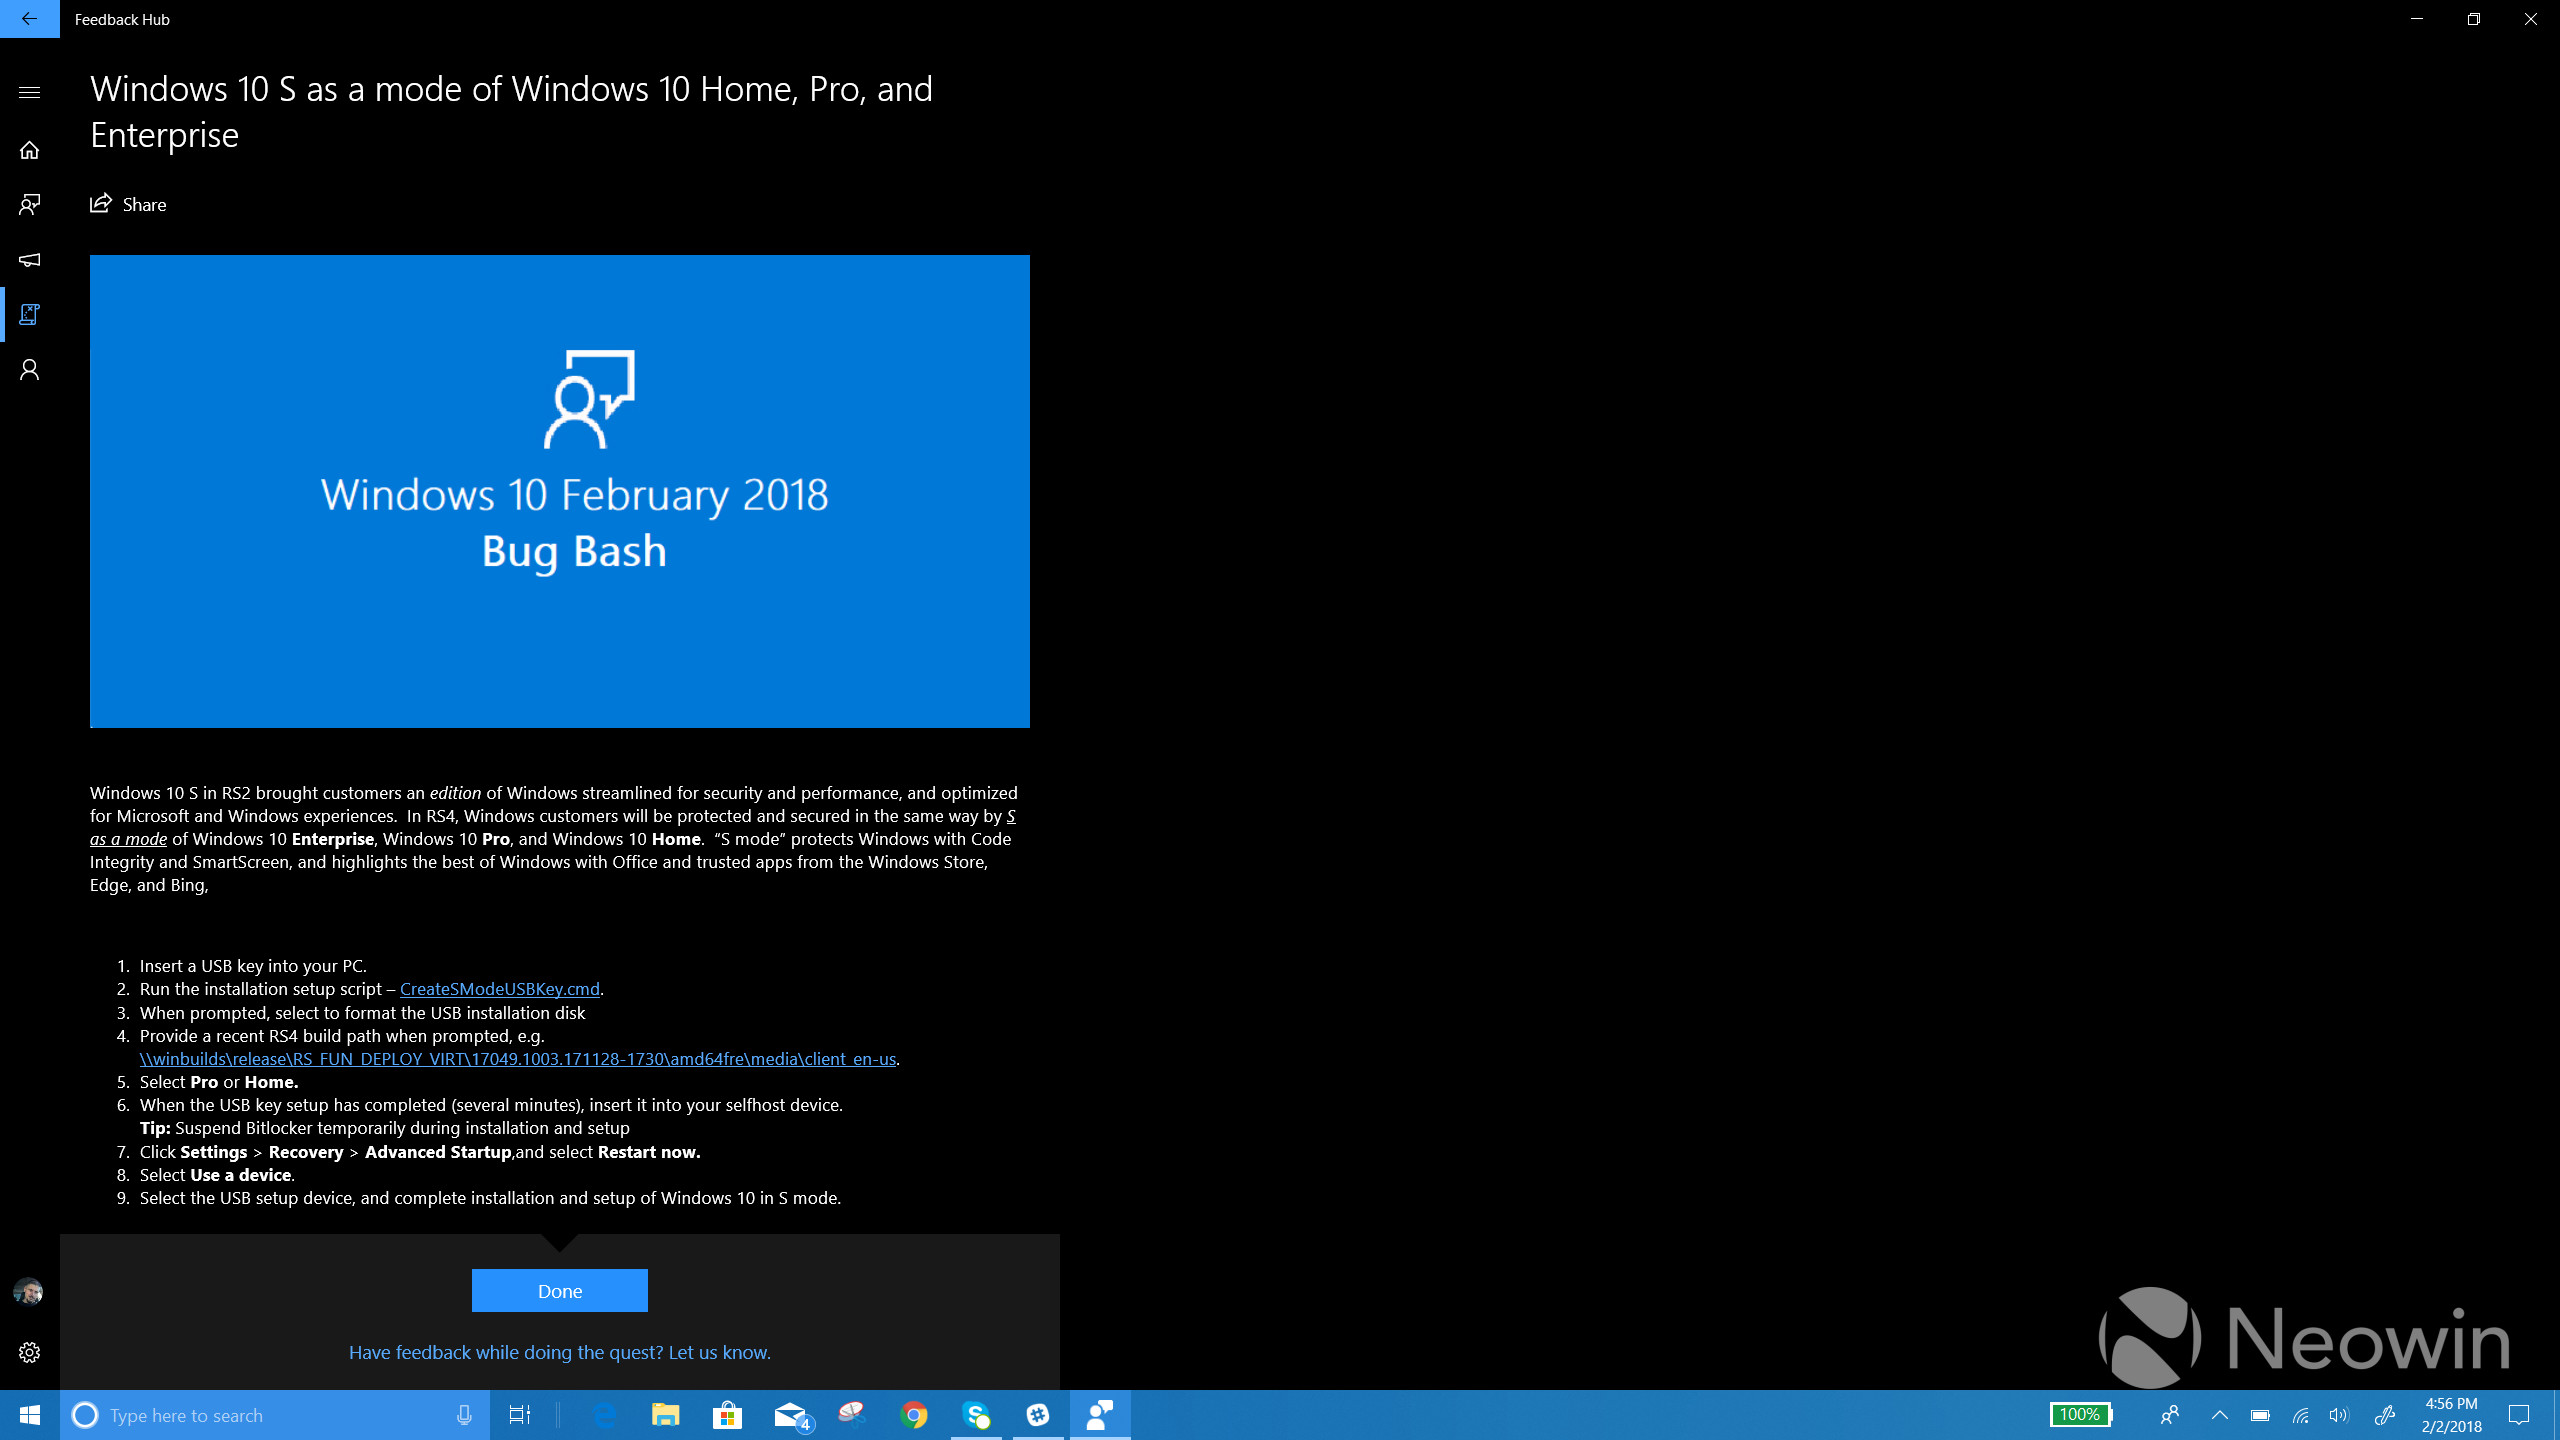 Microsoft Debuts New AI Platform in Windows 10